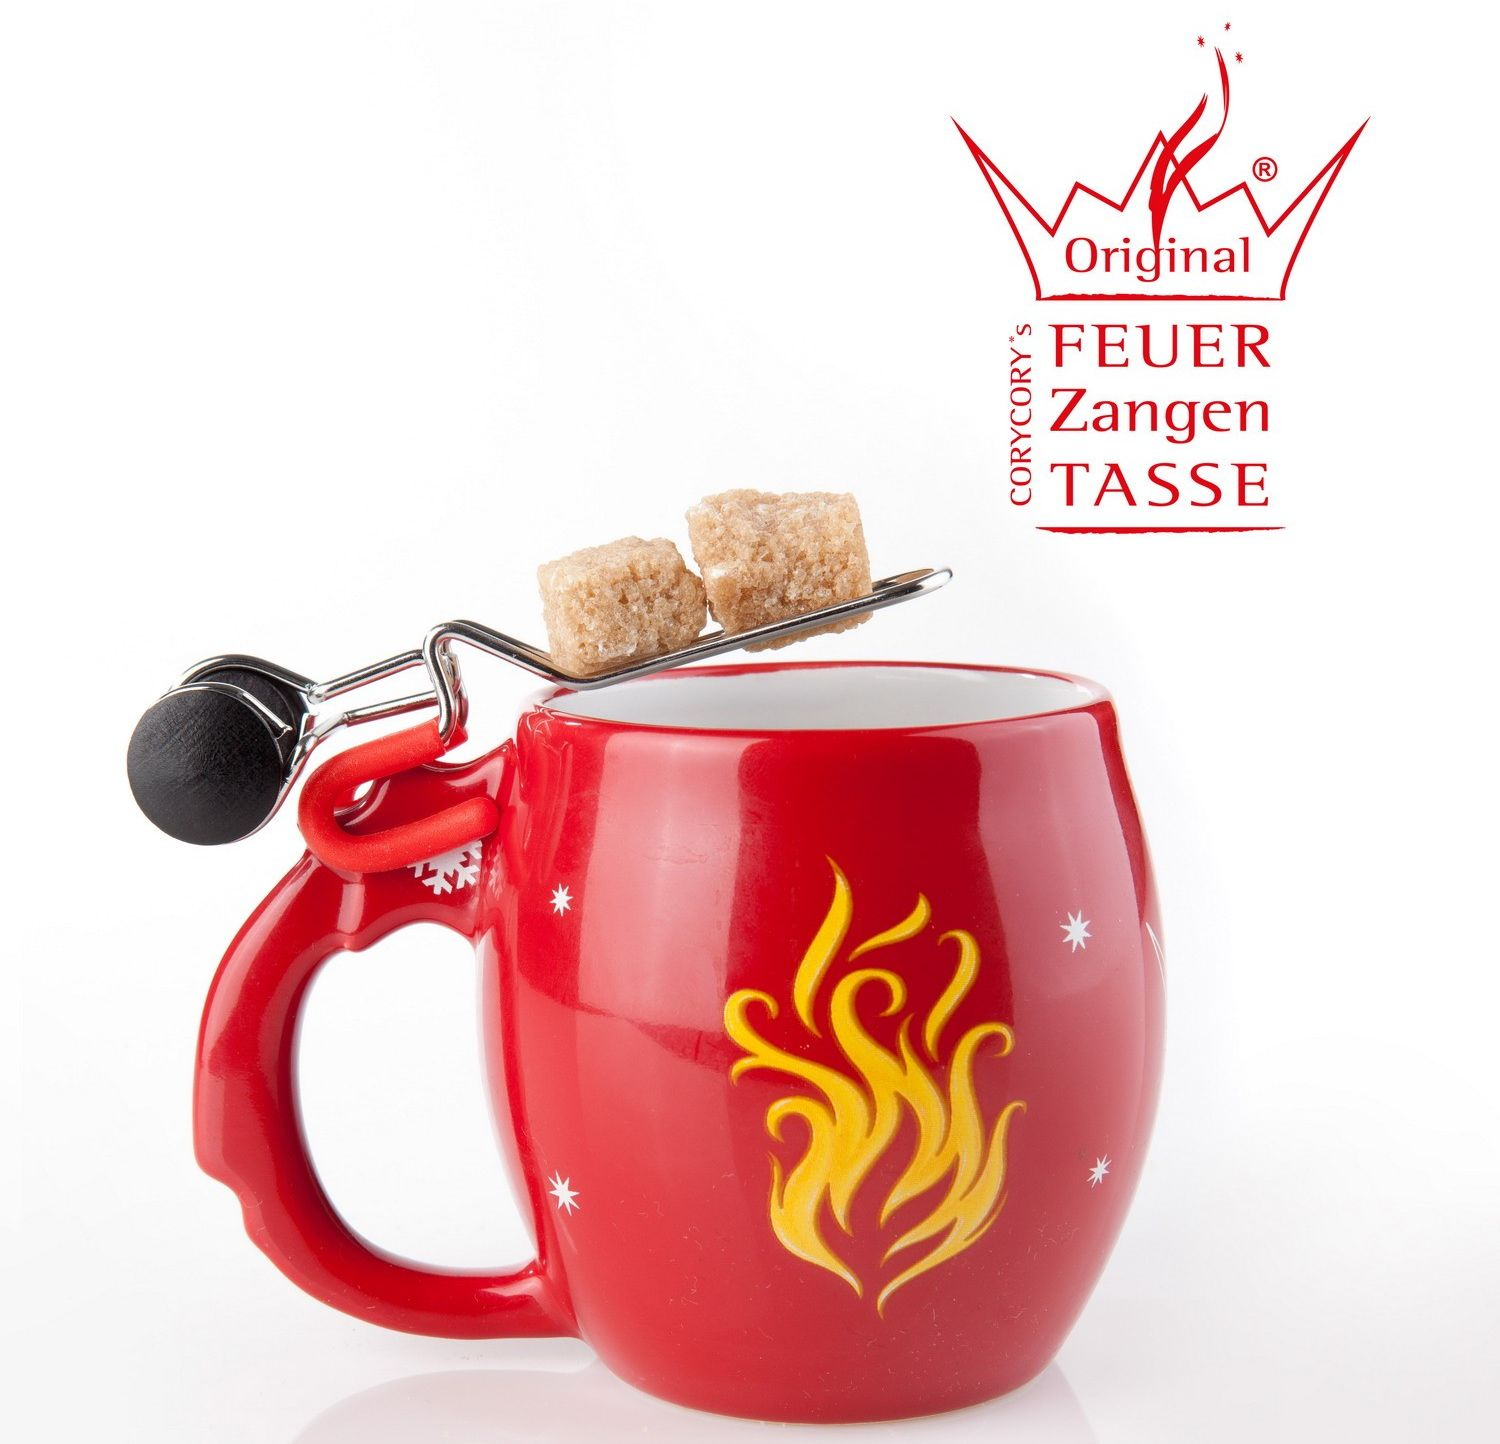 4 original feuerzangen becher tassen feuer feuerzangenbowle sternenschweif 2013 ebay. Black Bedroom Furniture Sets. Home Design Ideas